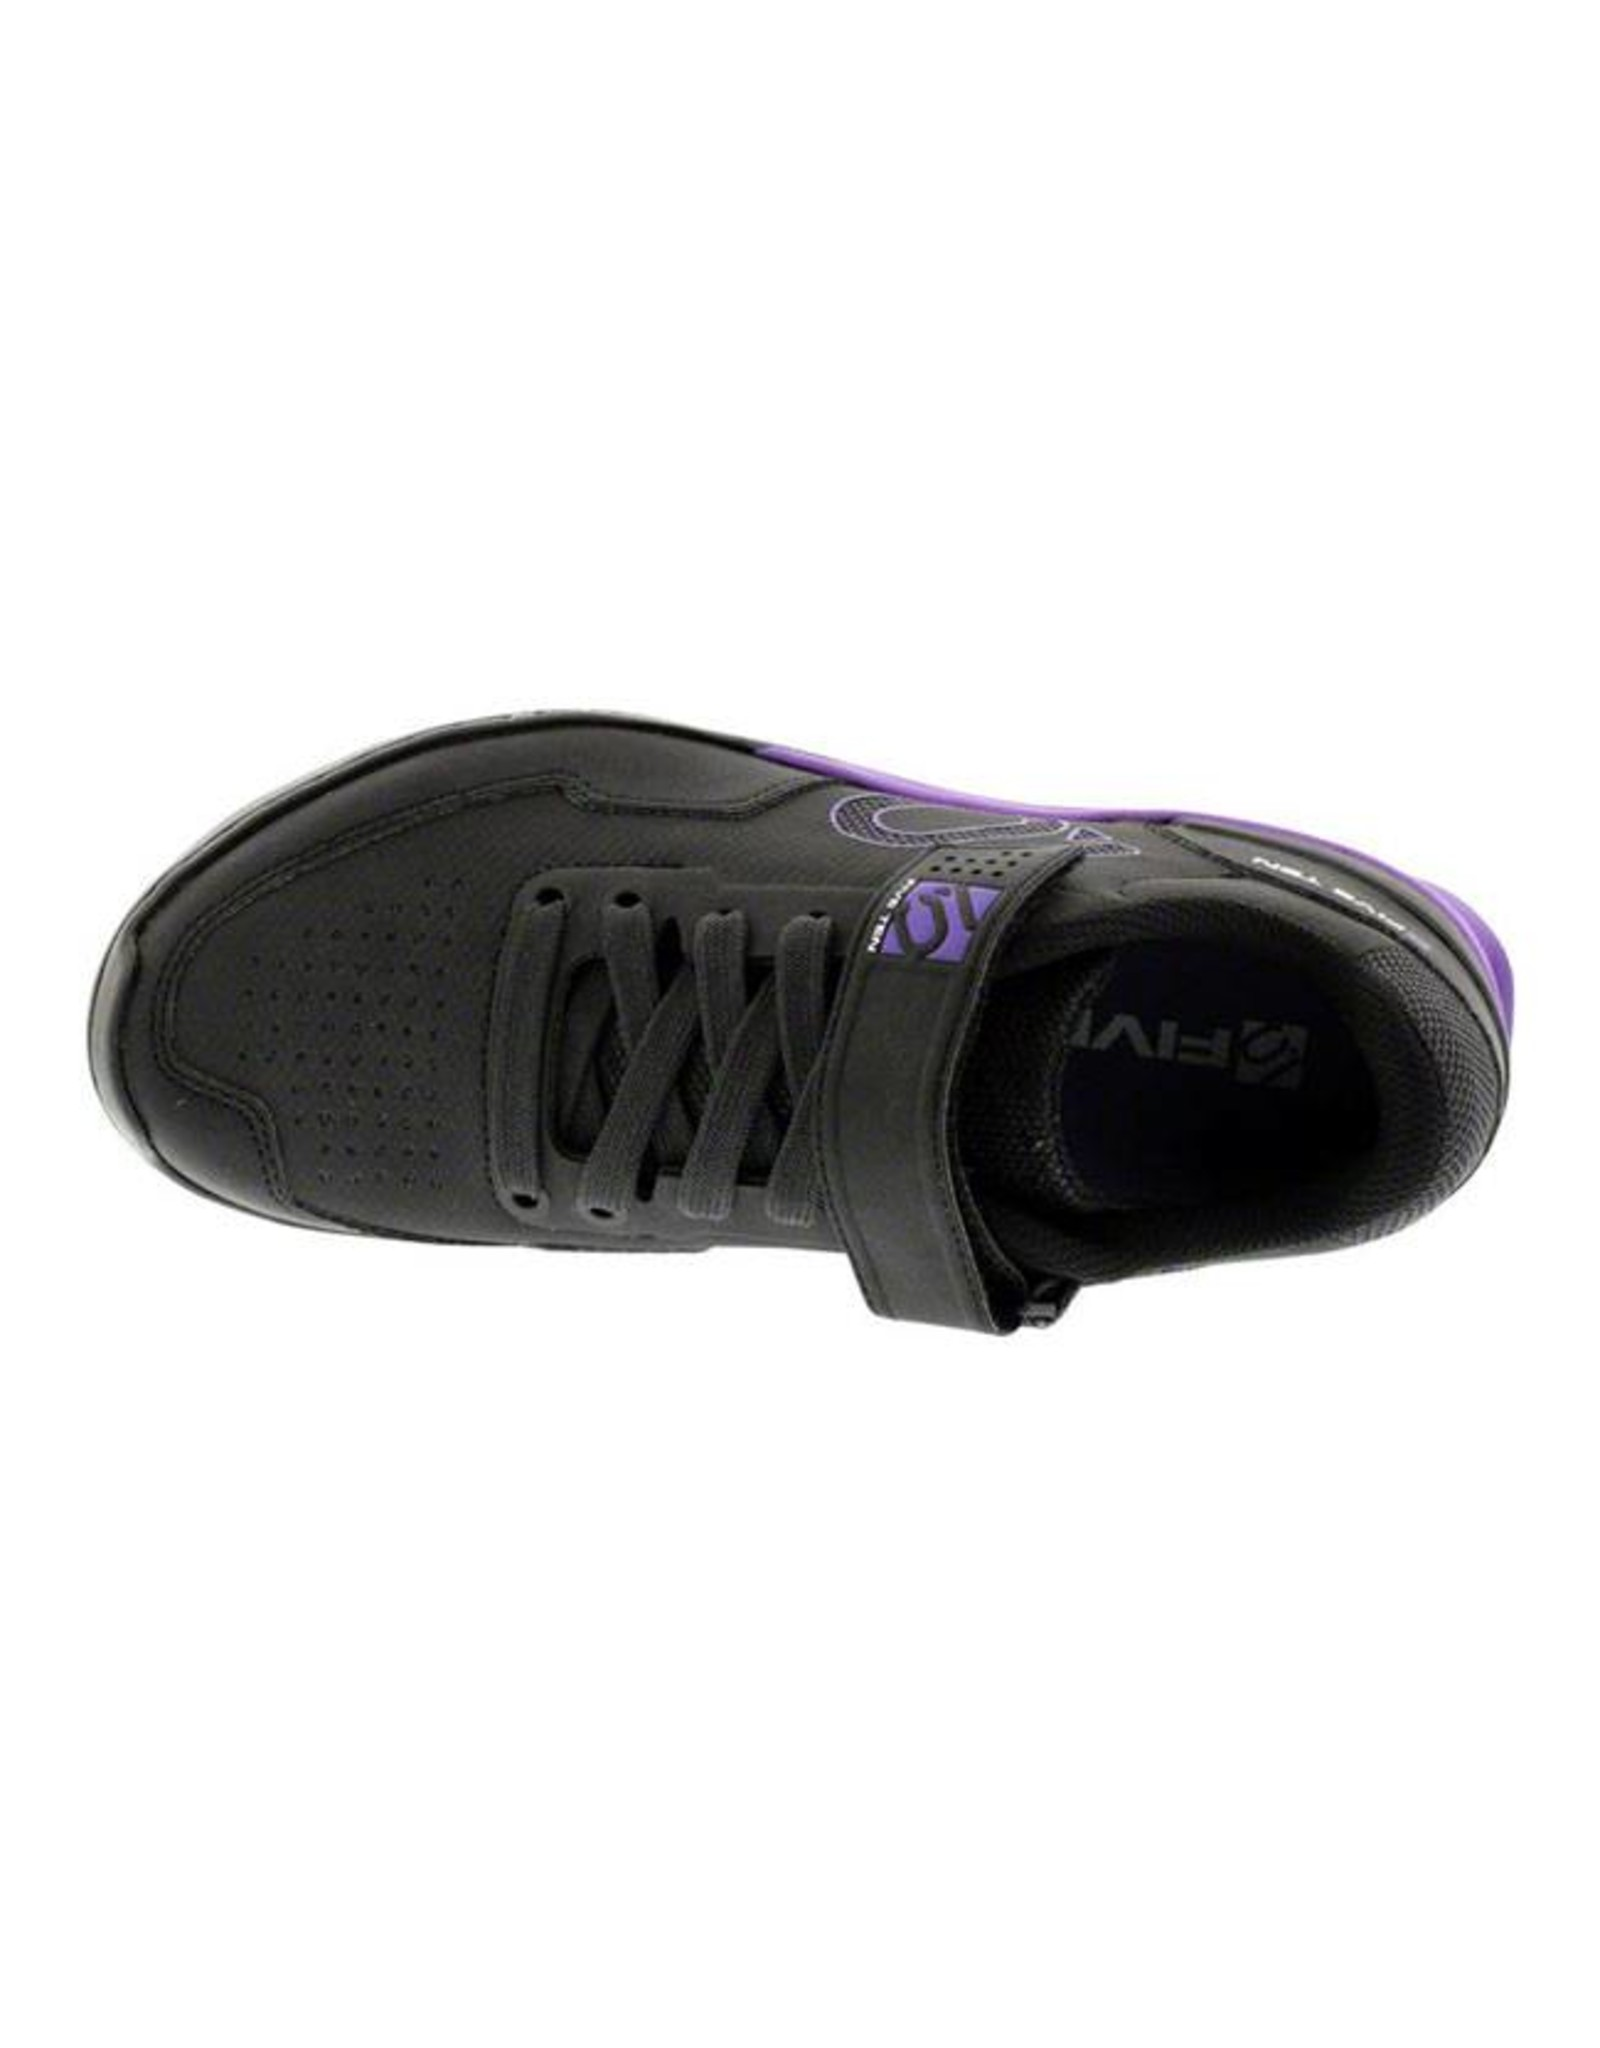 Five Ten Five Ten Kestrel Lace Women's Clipless Shoe: Black Purple 7